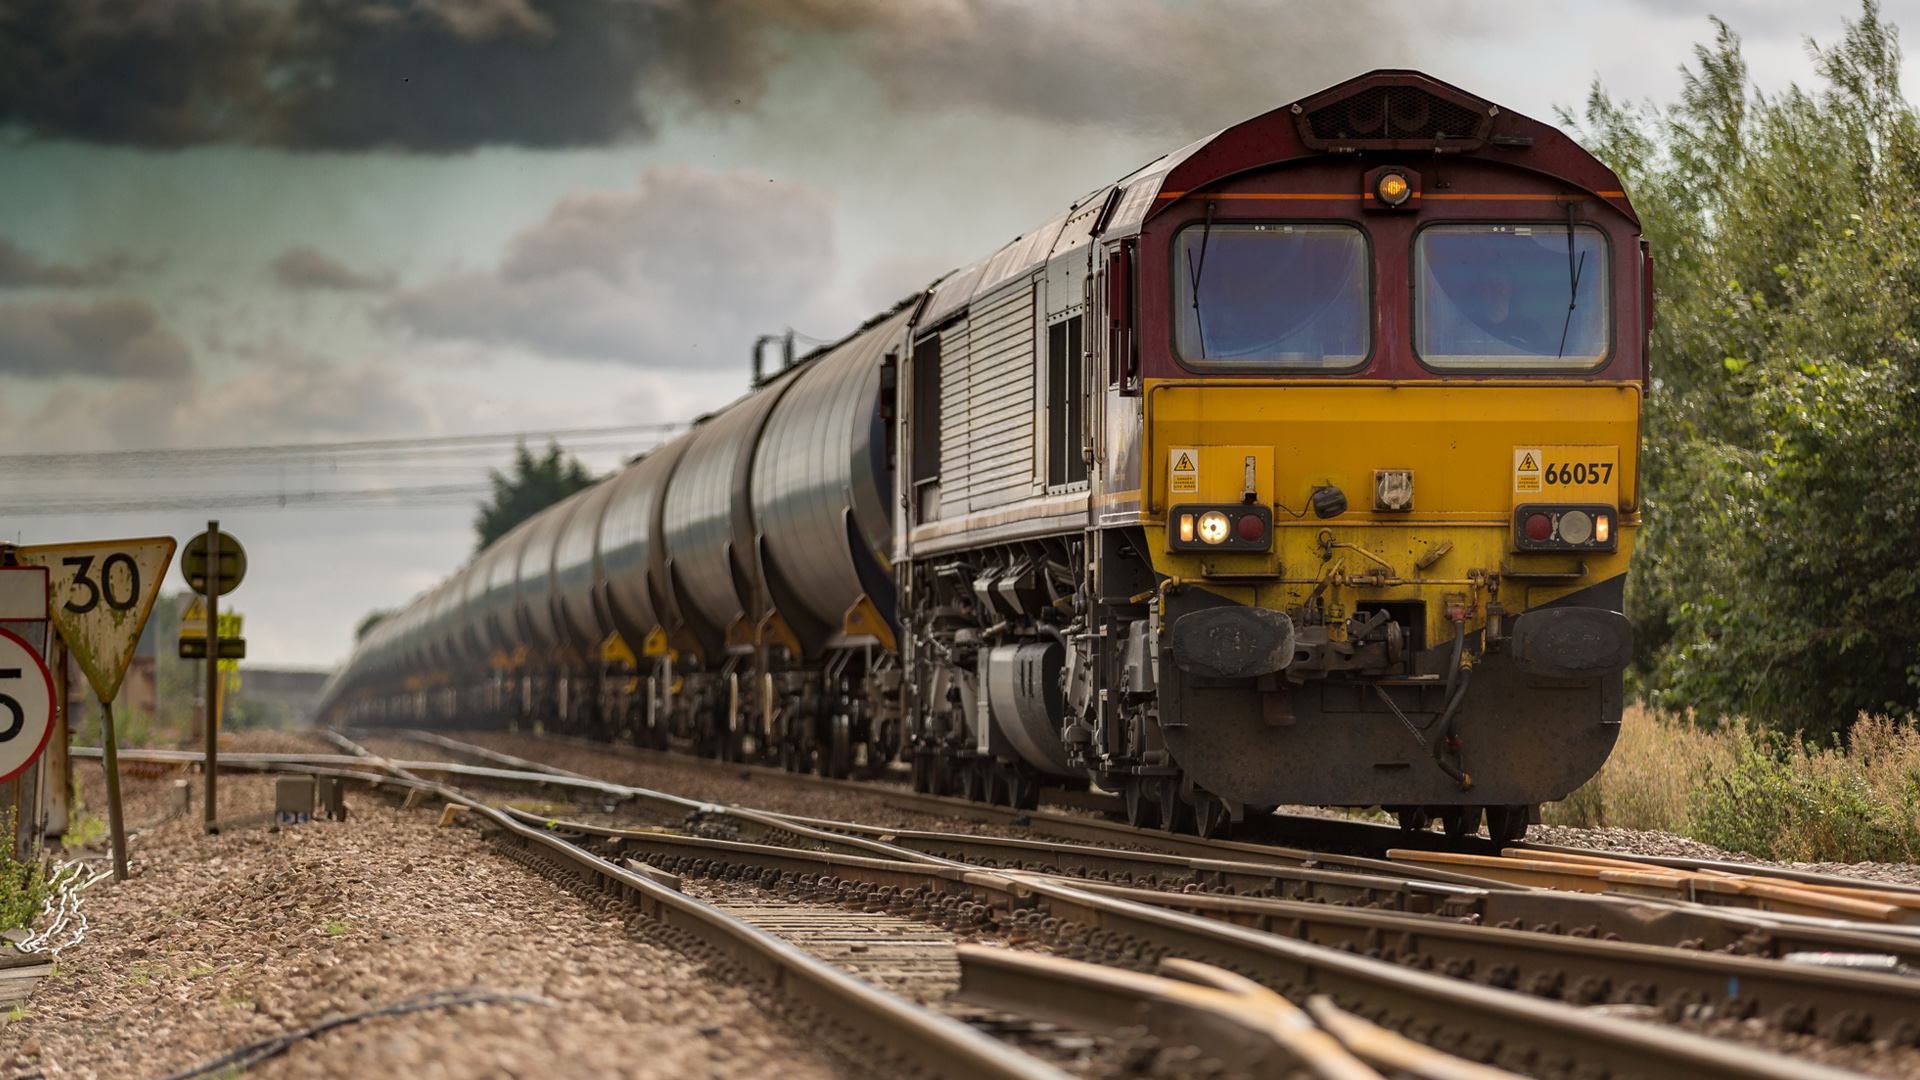 Train Photo Download With Freight Train On Railways